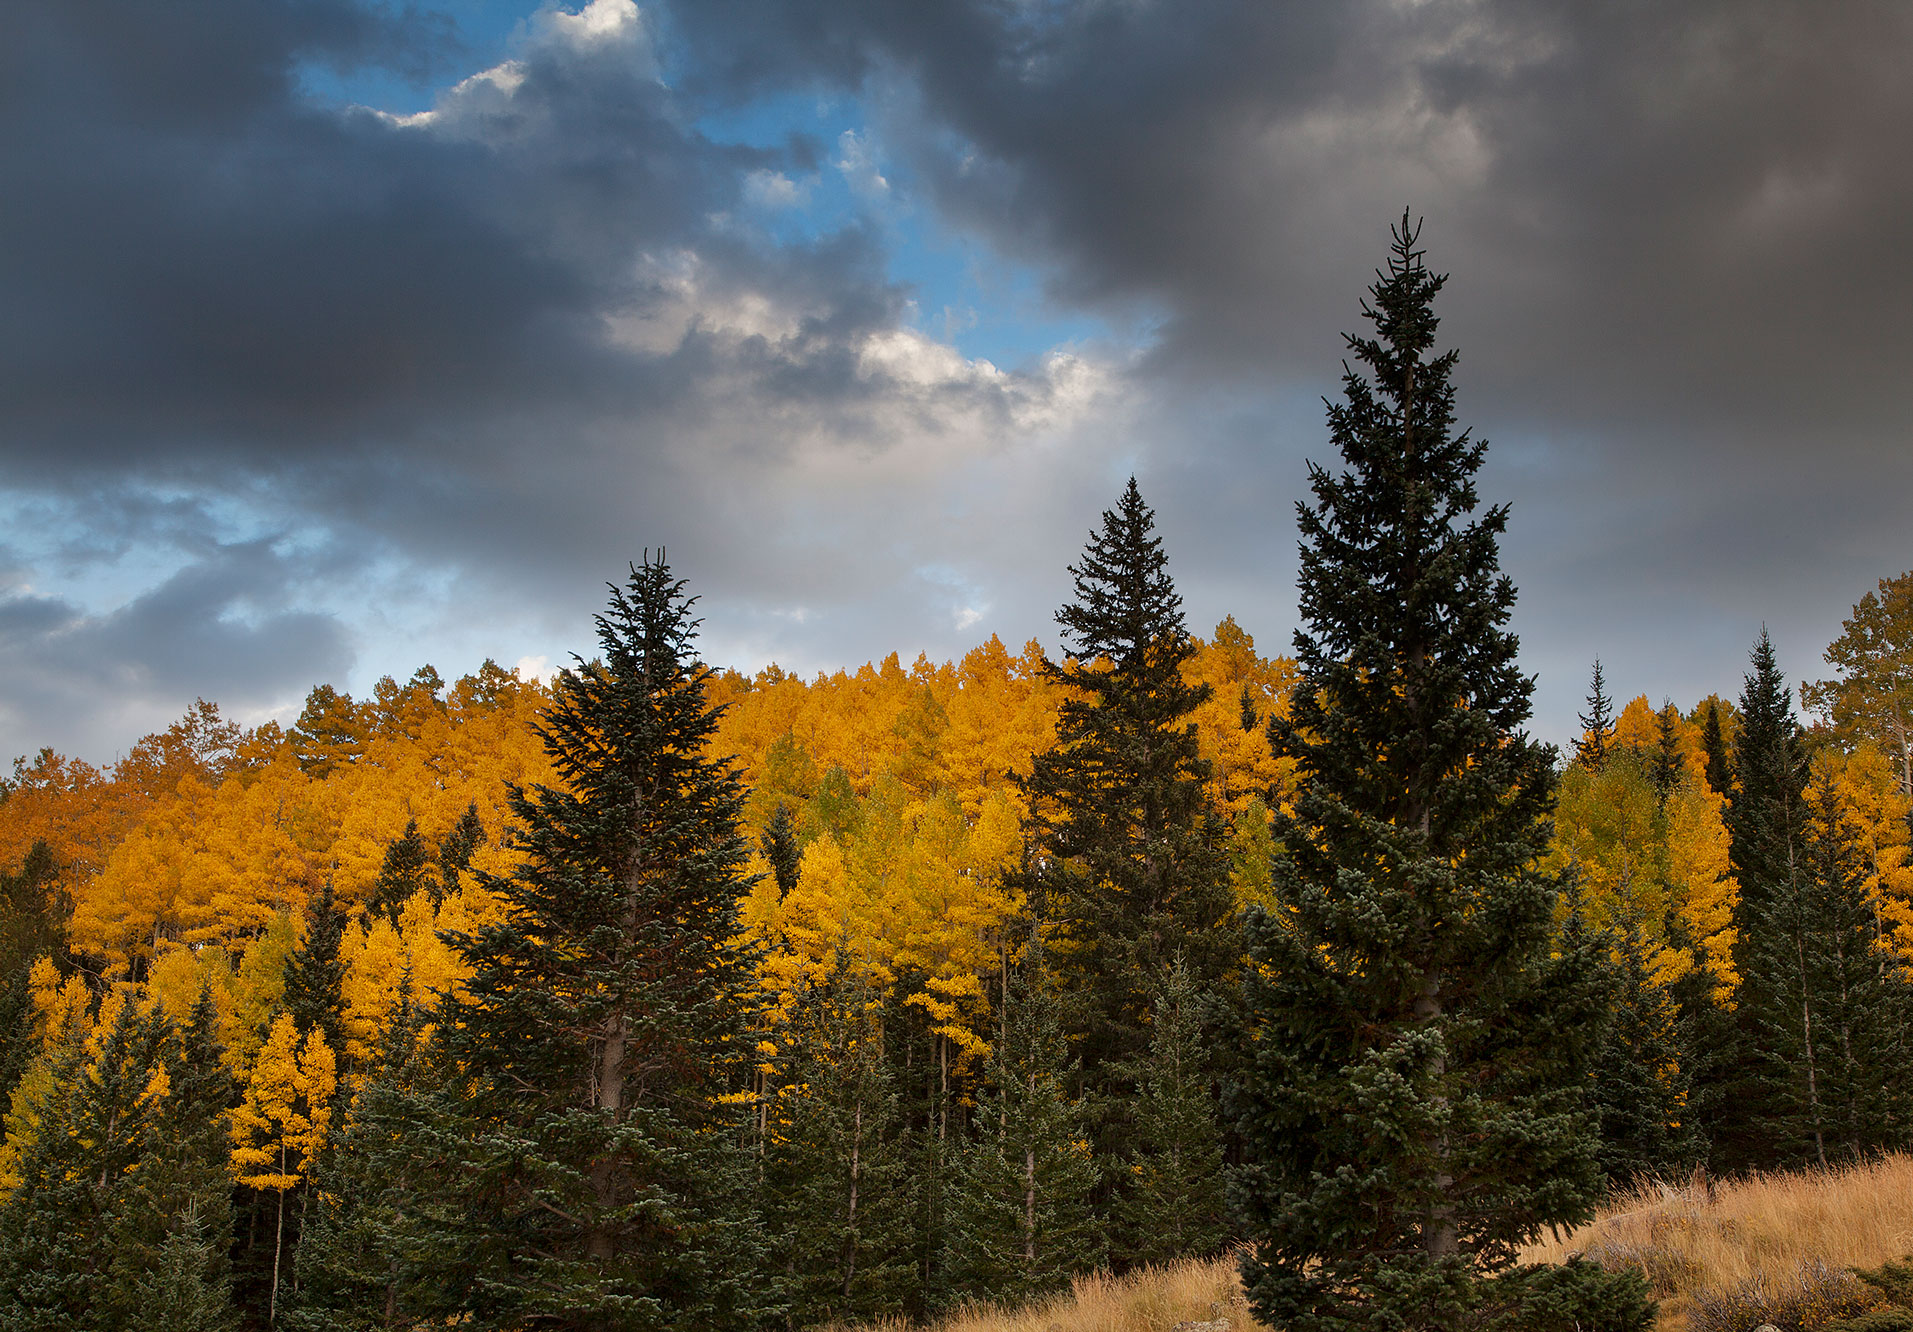 Aspens and pines in autumn in the San Francisco Peaks of northern Arizona